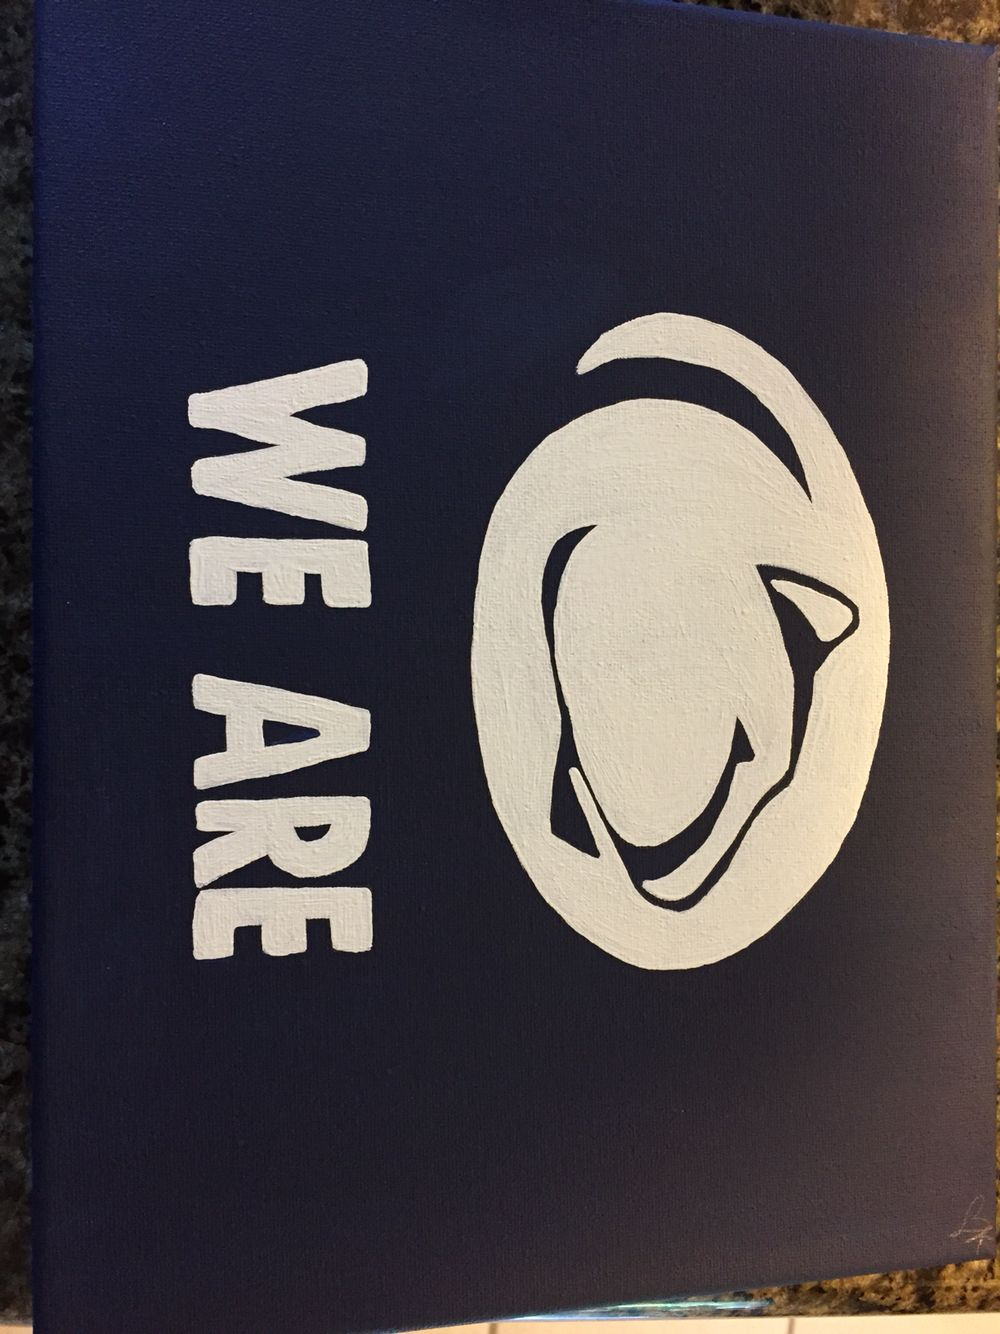 Penn state Nittany lion - we are - PSU canvas with navy and white